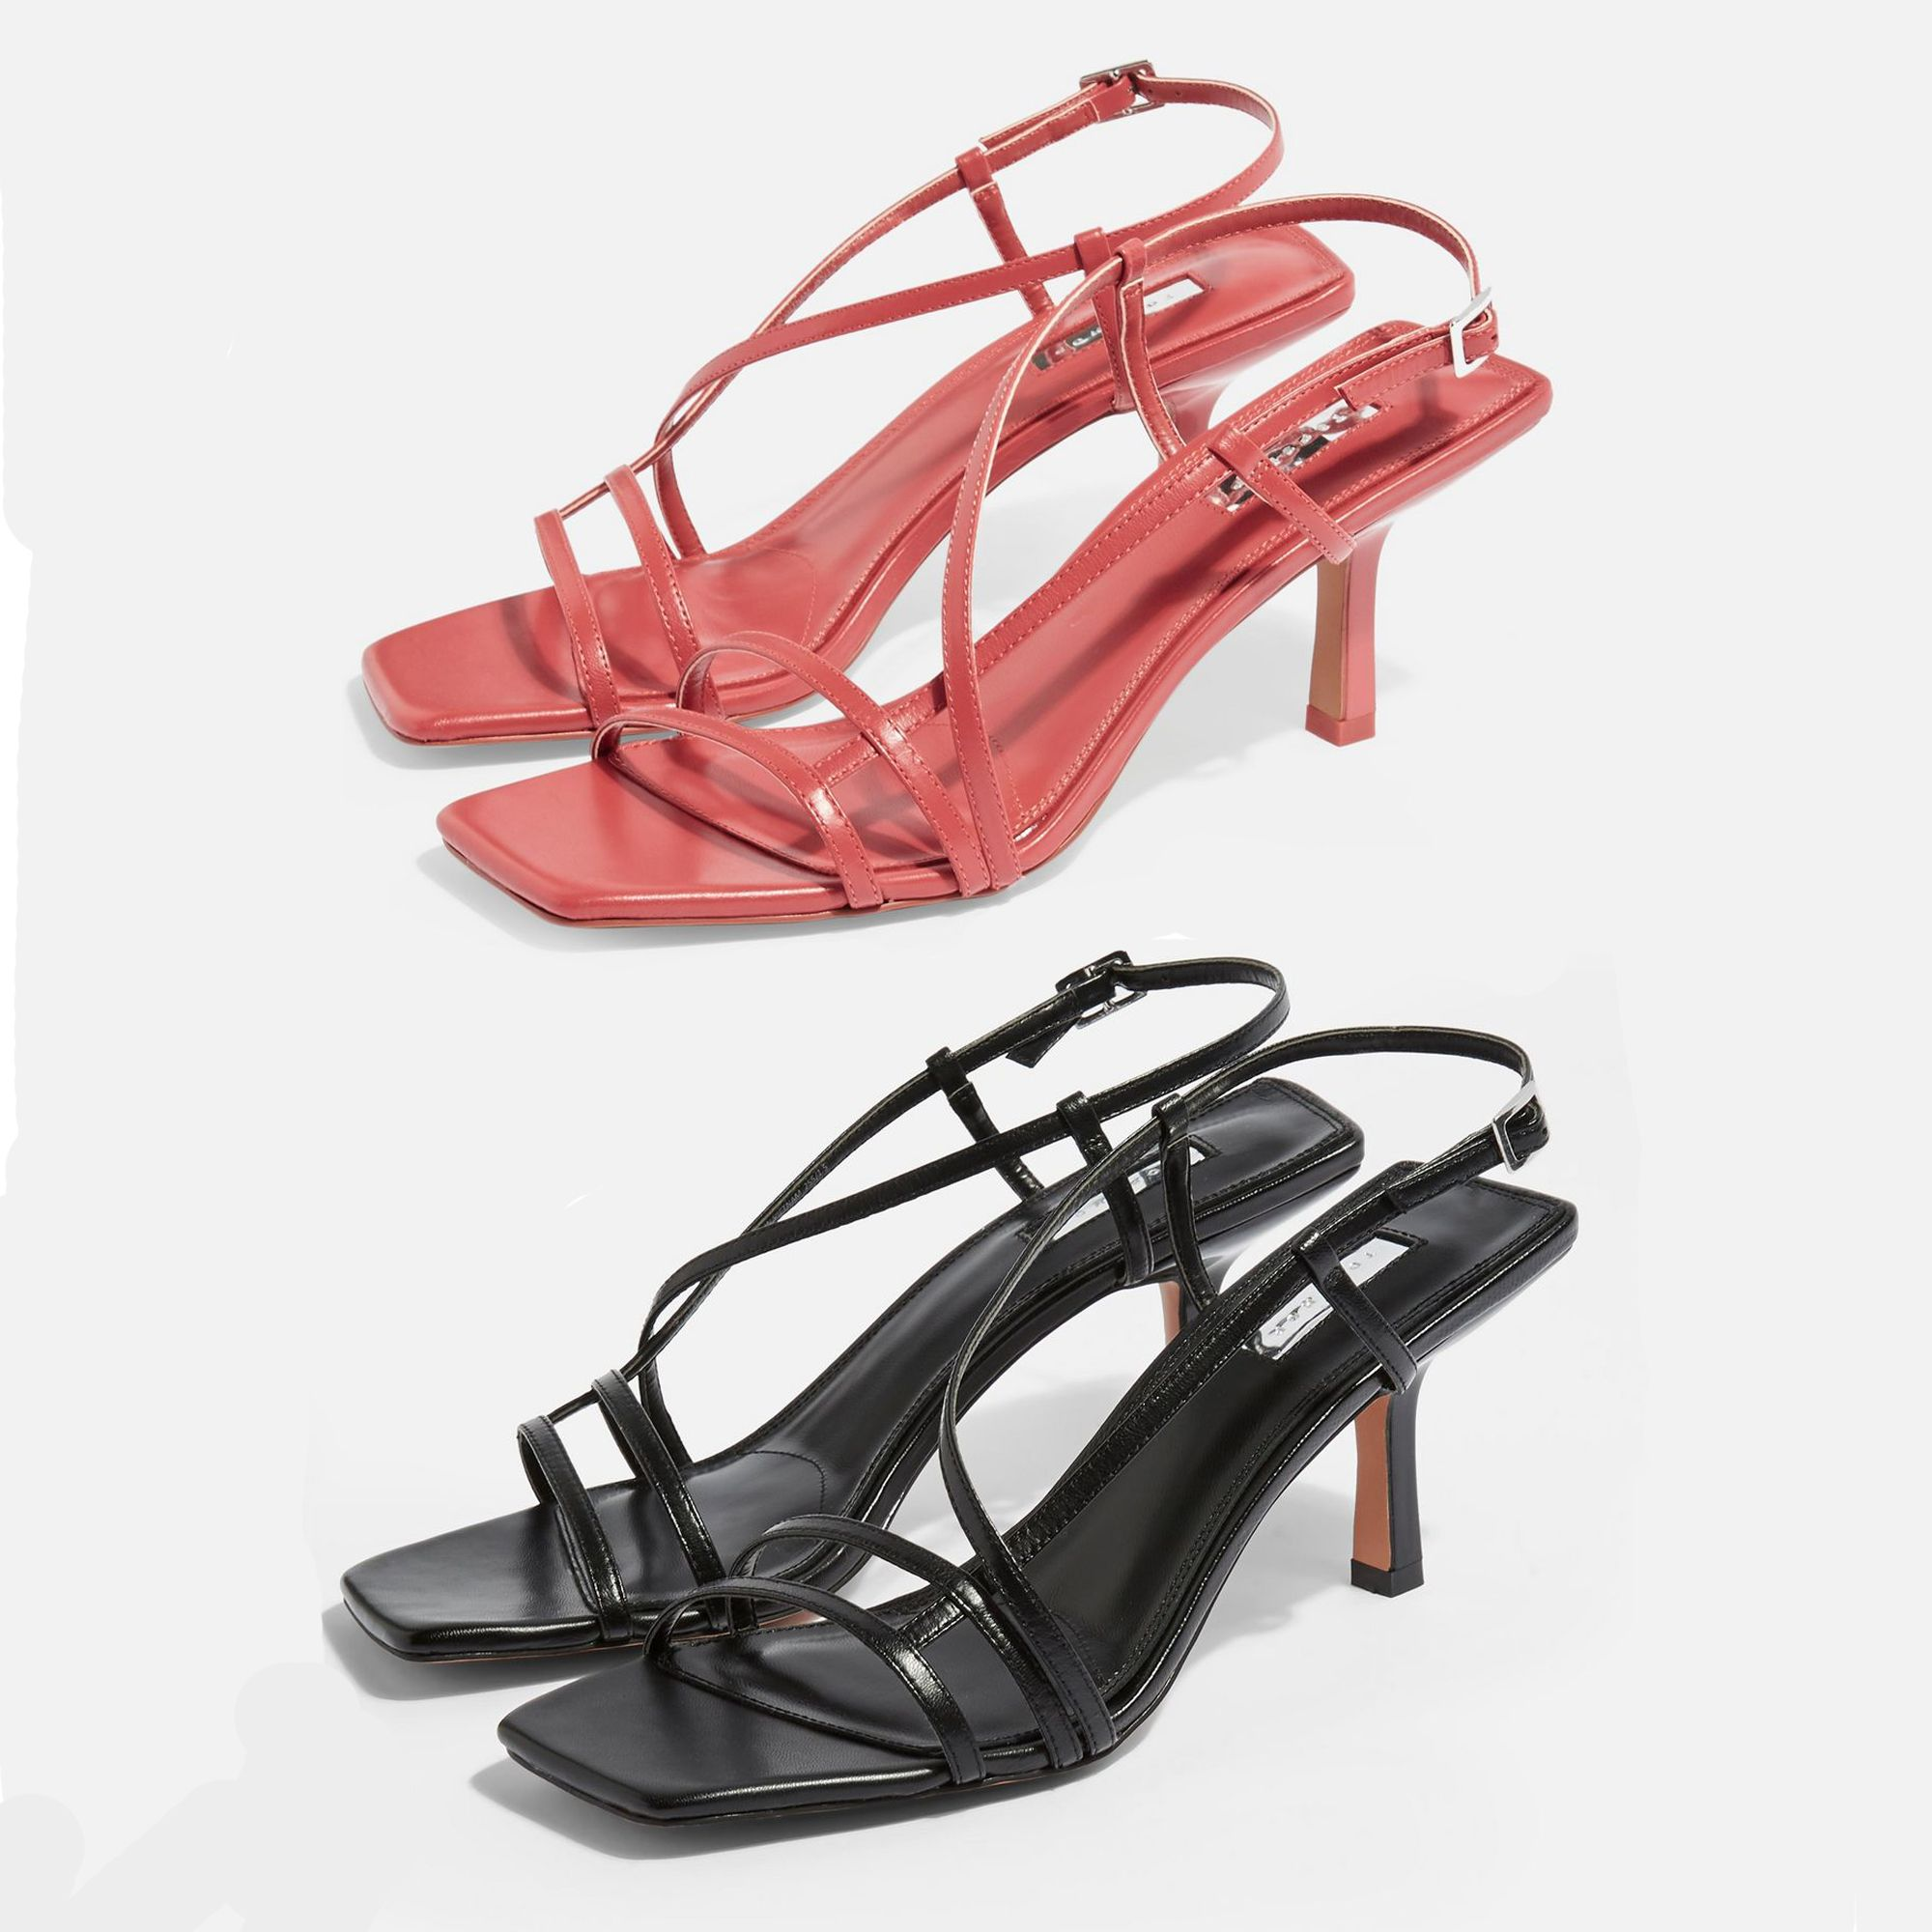 These Sell Out 46 Classic Strappy Shoes From The High Street Are Back In Stock